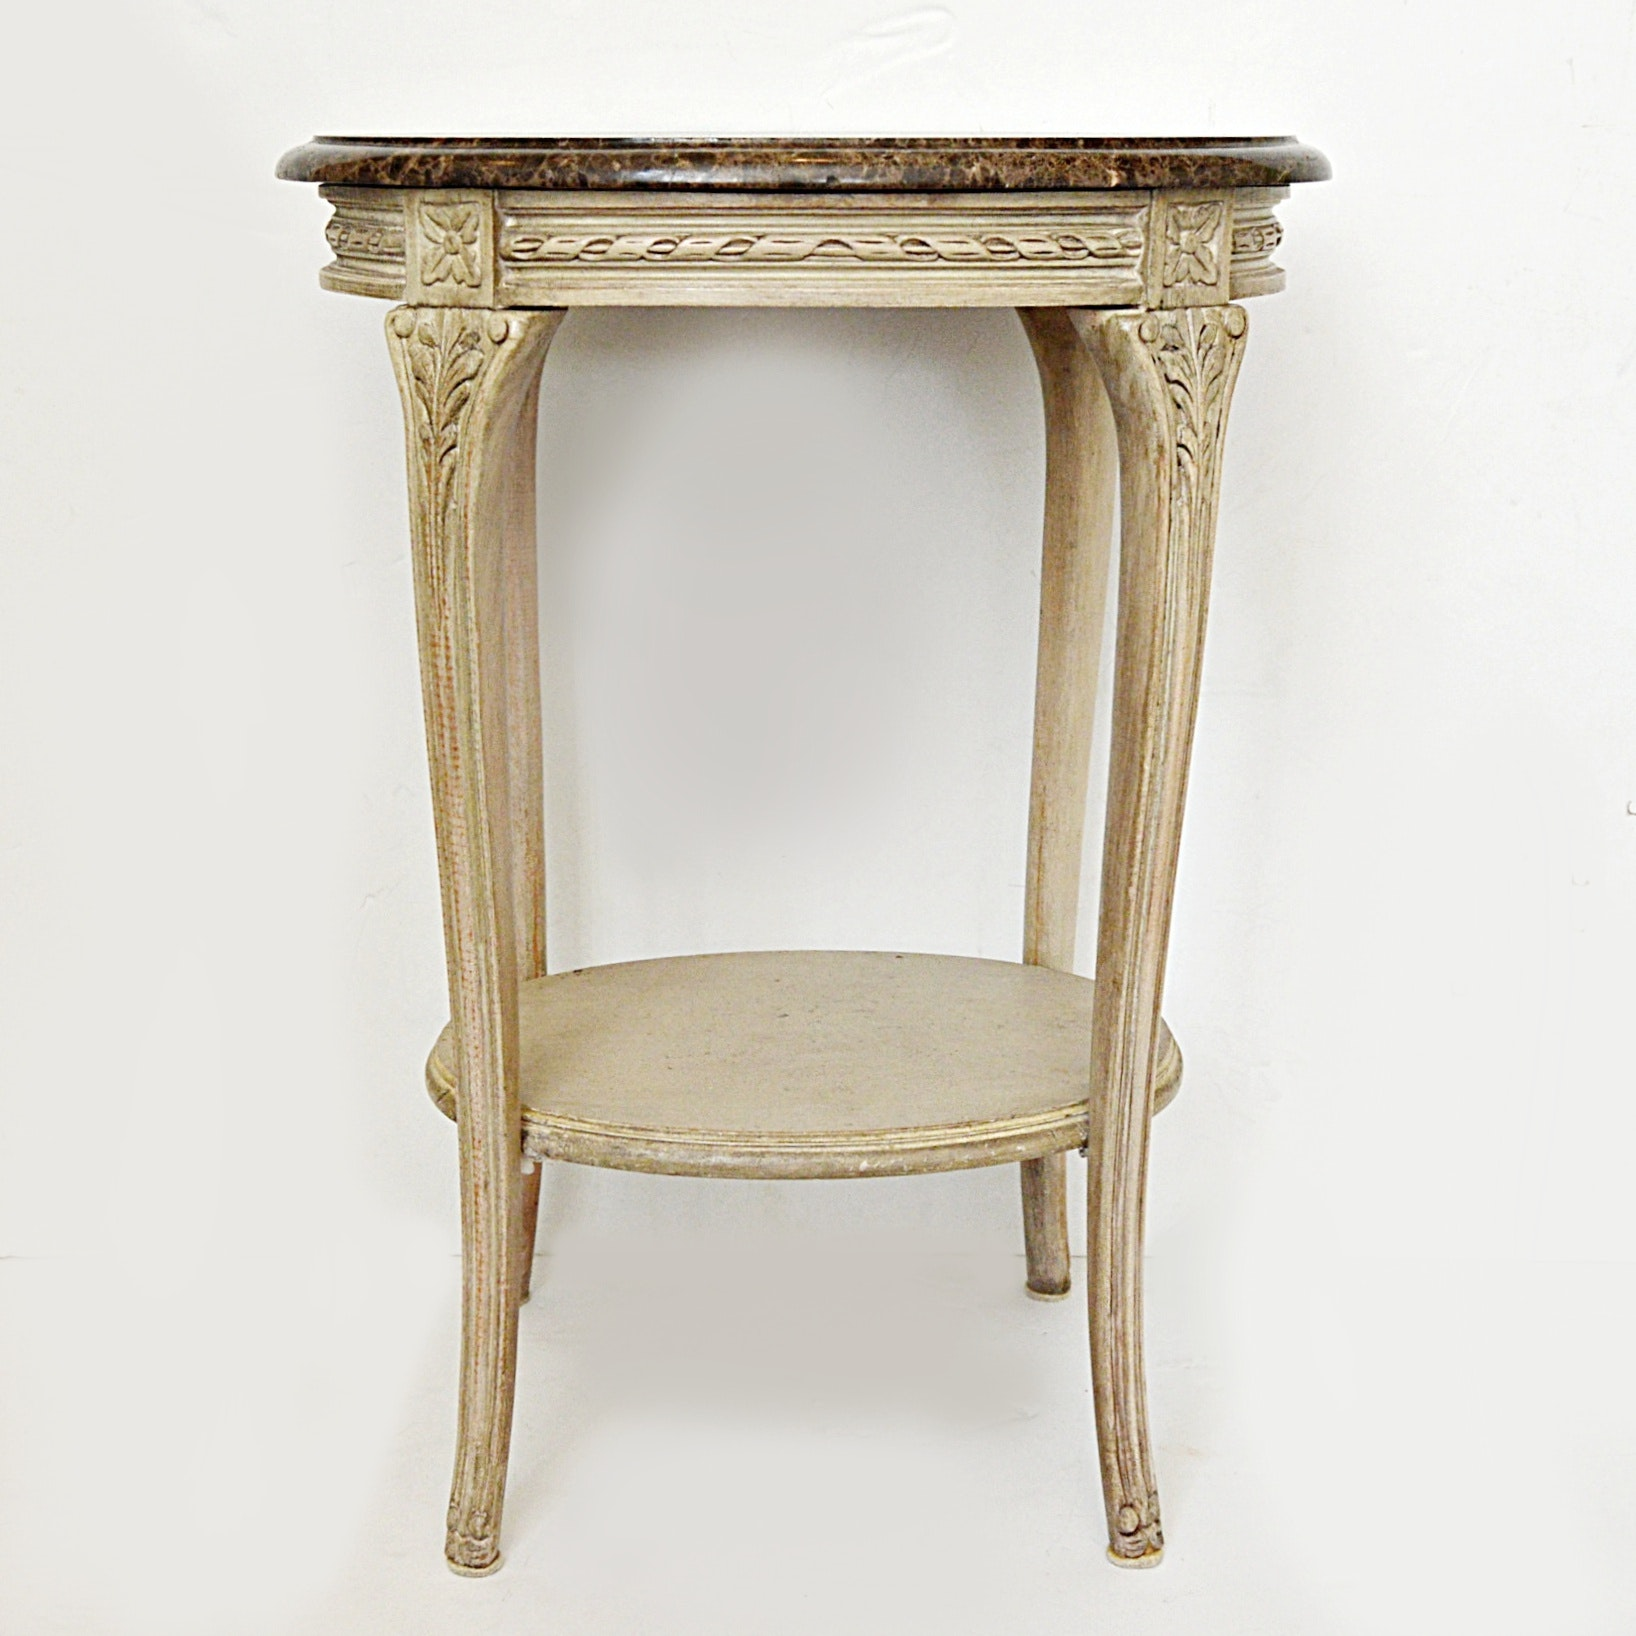 Louis XV Style Marble Top Oval Side Table with Emperador Marble Top